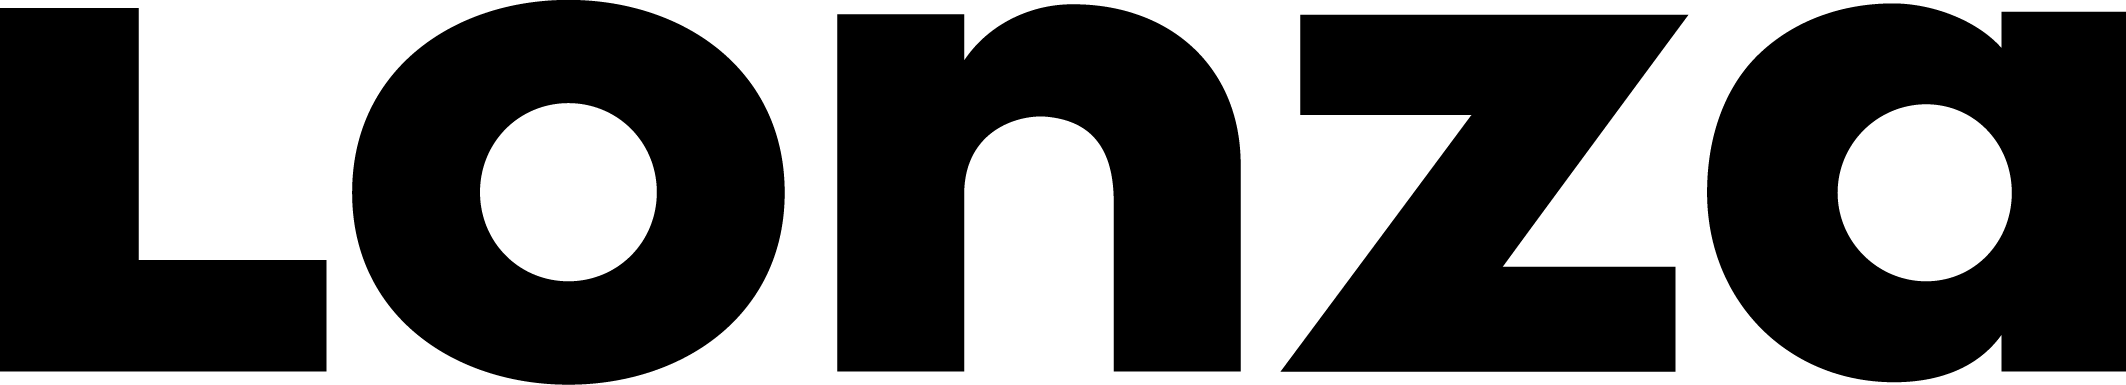 LONZA logo [Converted].png